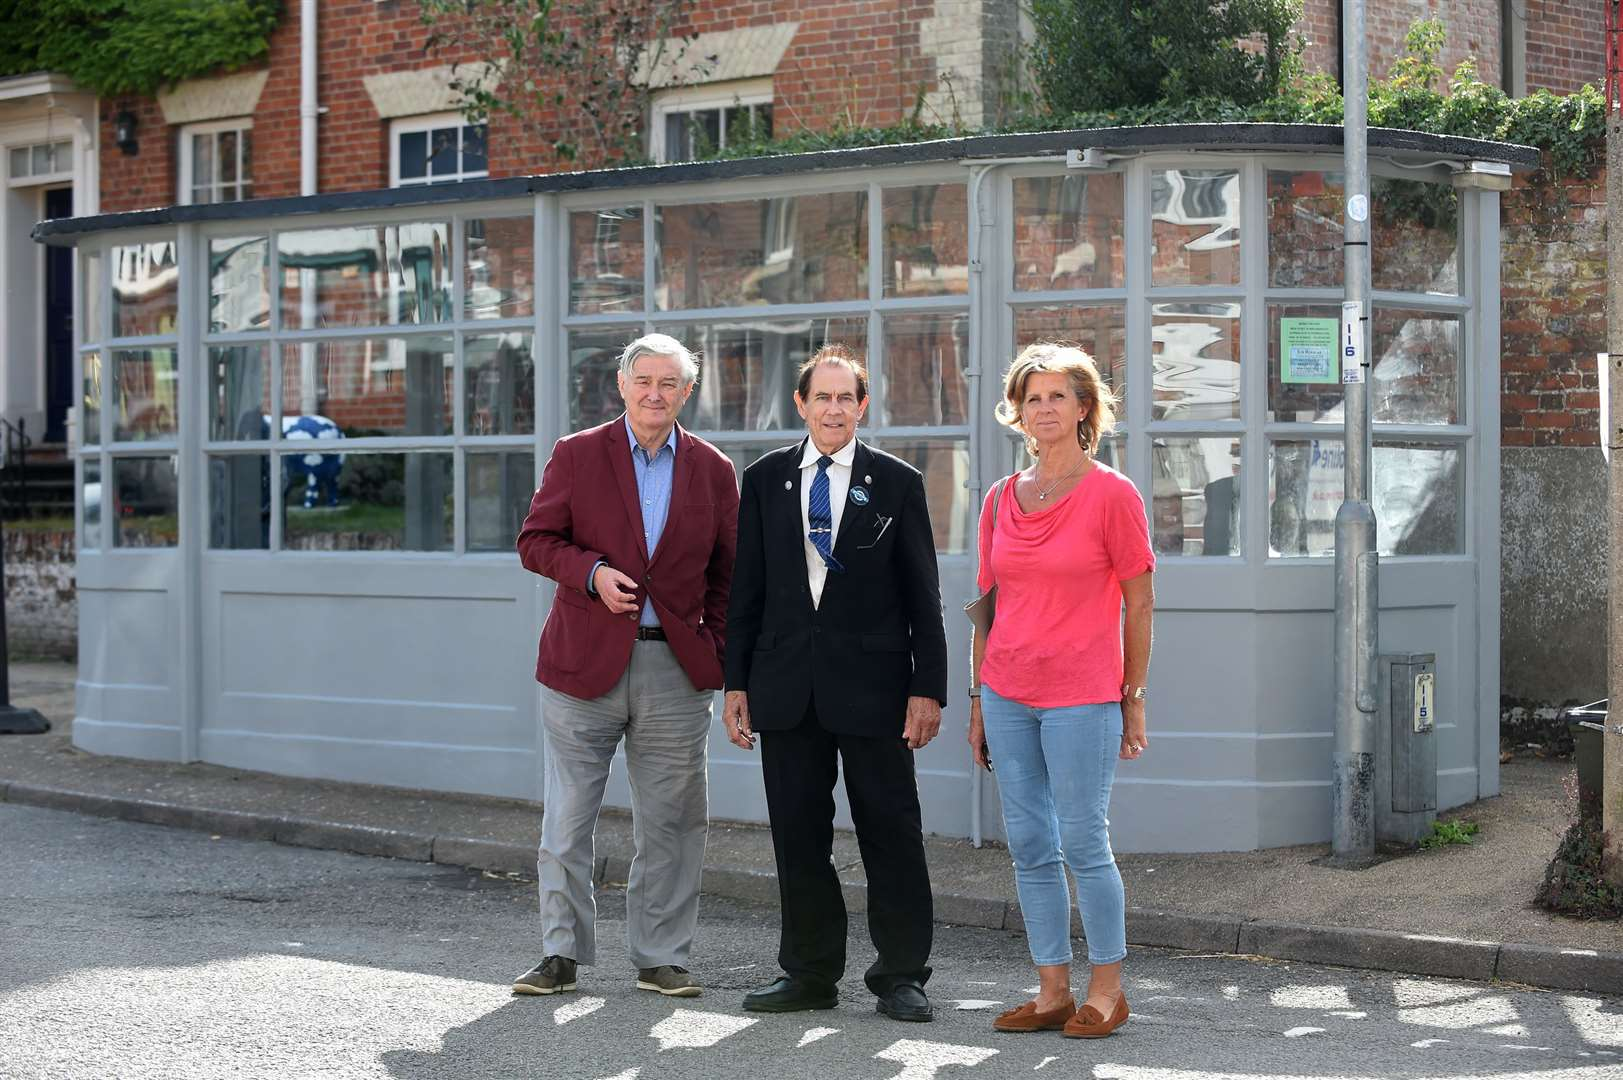 County councillor Guy McGregor, bus operator Jeff Morss and Eye mayor Jane Hudson in front of the bus shelter. Picture by Mecha Morton.